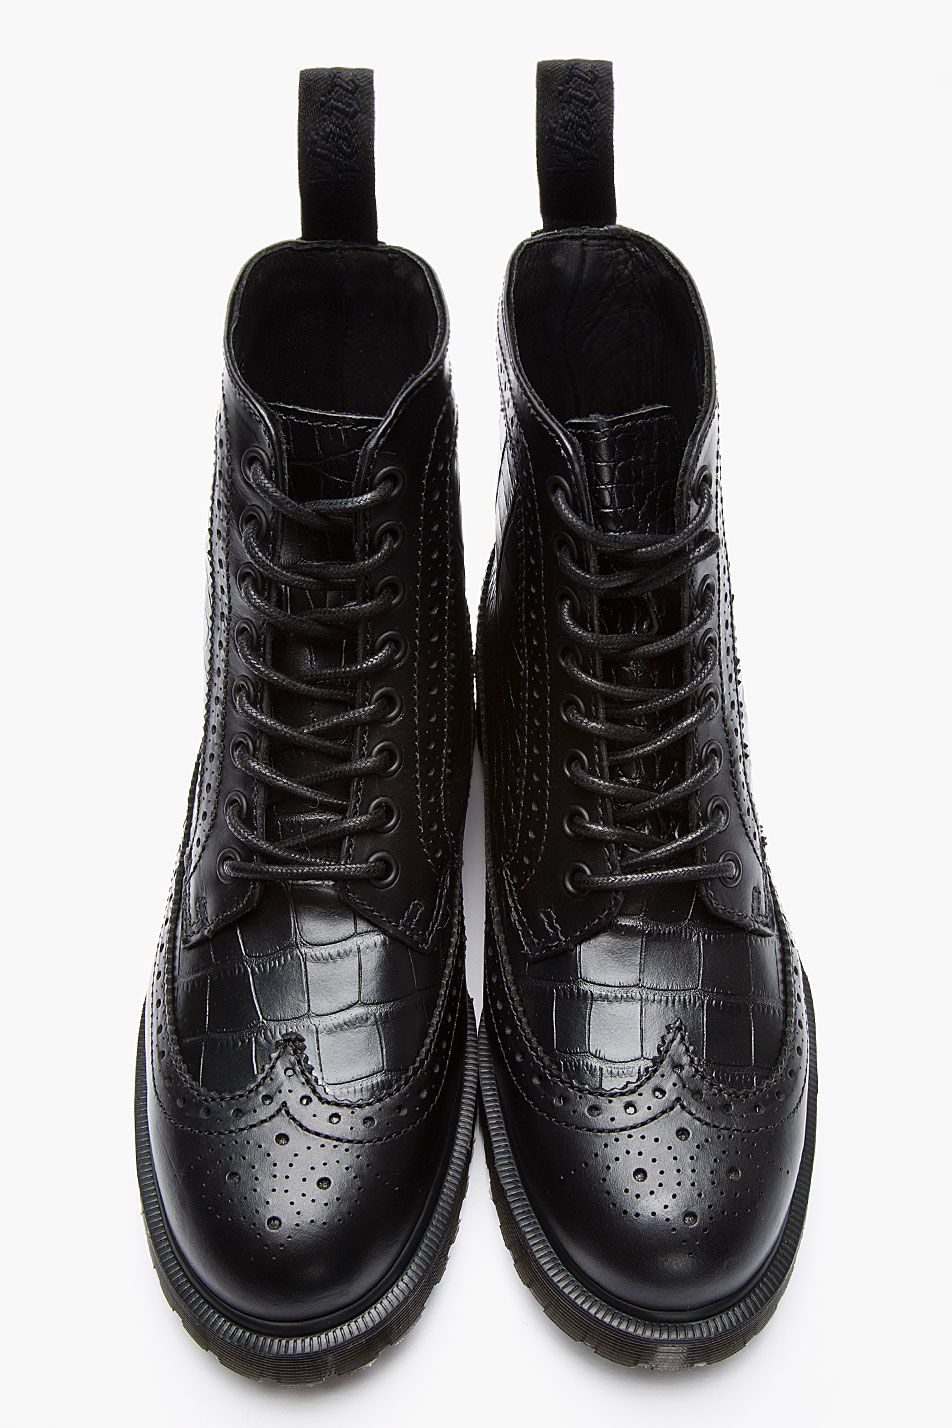 08a06ee44592b DR. MARTENS Black Leather Croc-embossed Marcus 8-Eye Brogue Boots ...